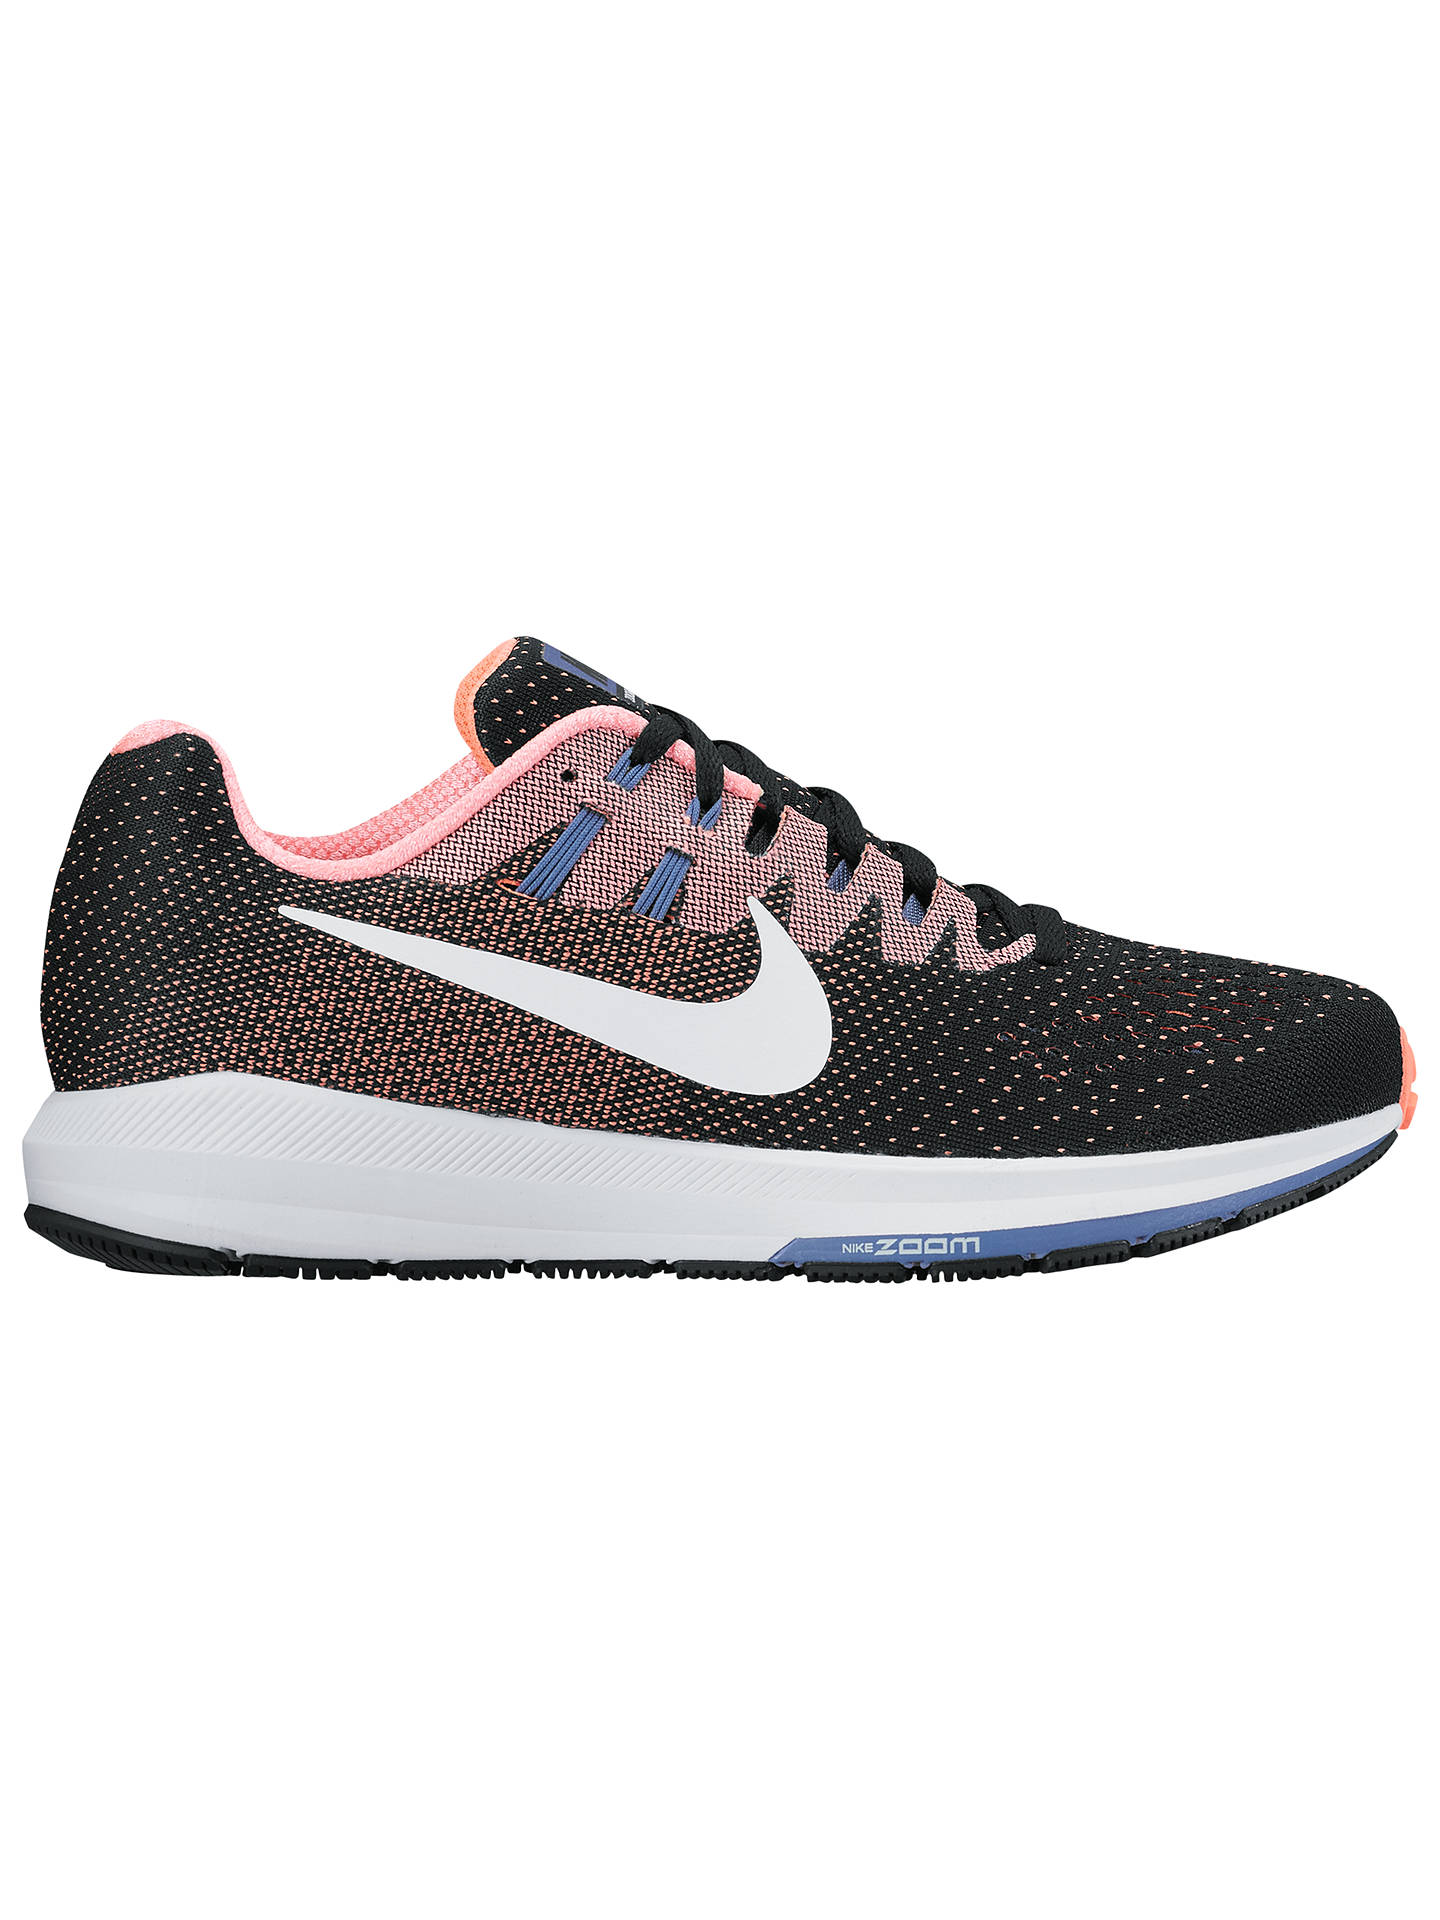 Buy Nike Air Zoom Structured 20 Women's Running Shoes, Black/White/Lava Glow, 4 Online at johnlewis.com